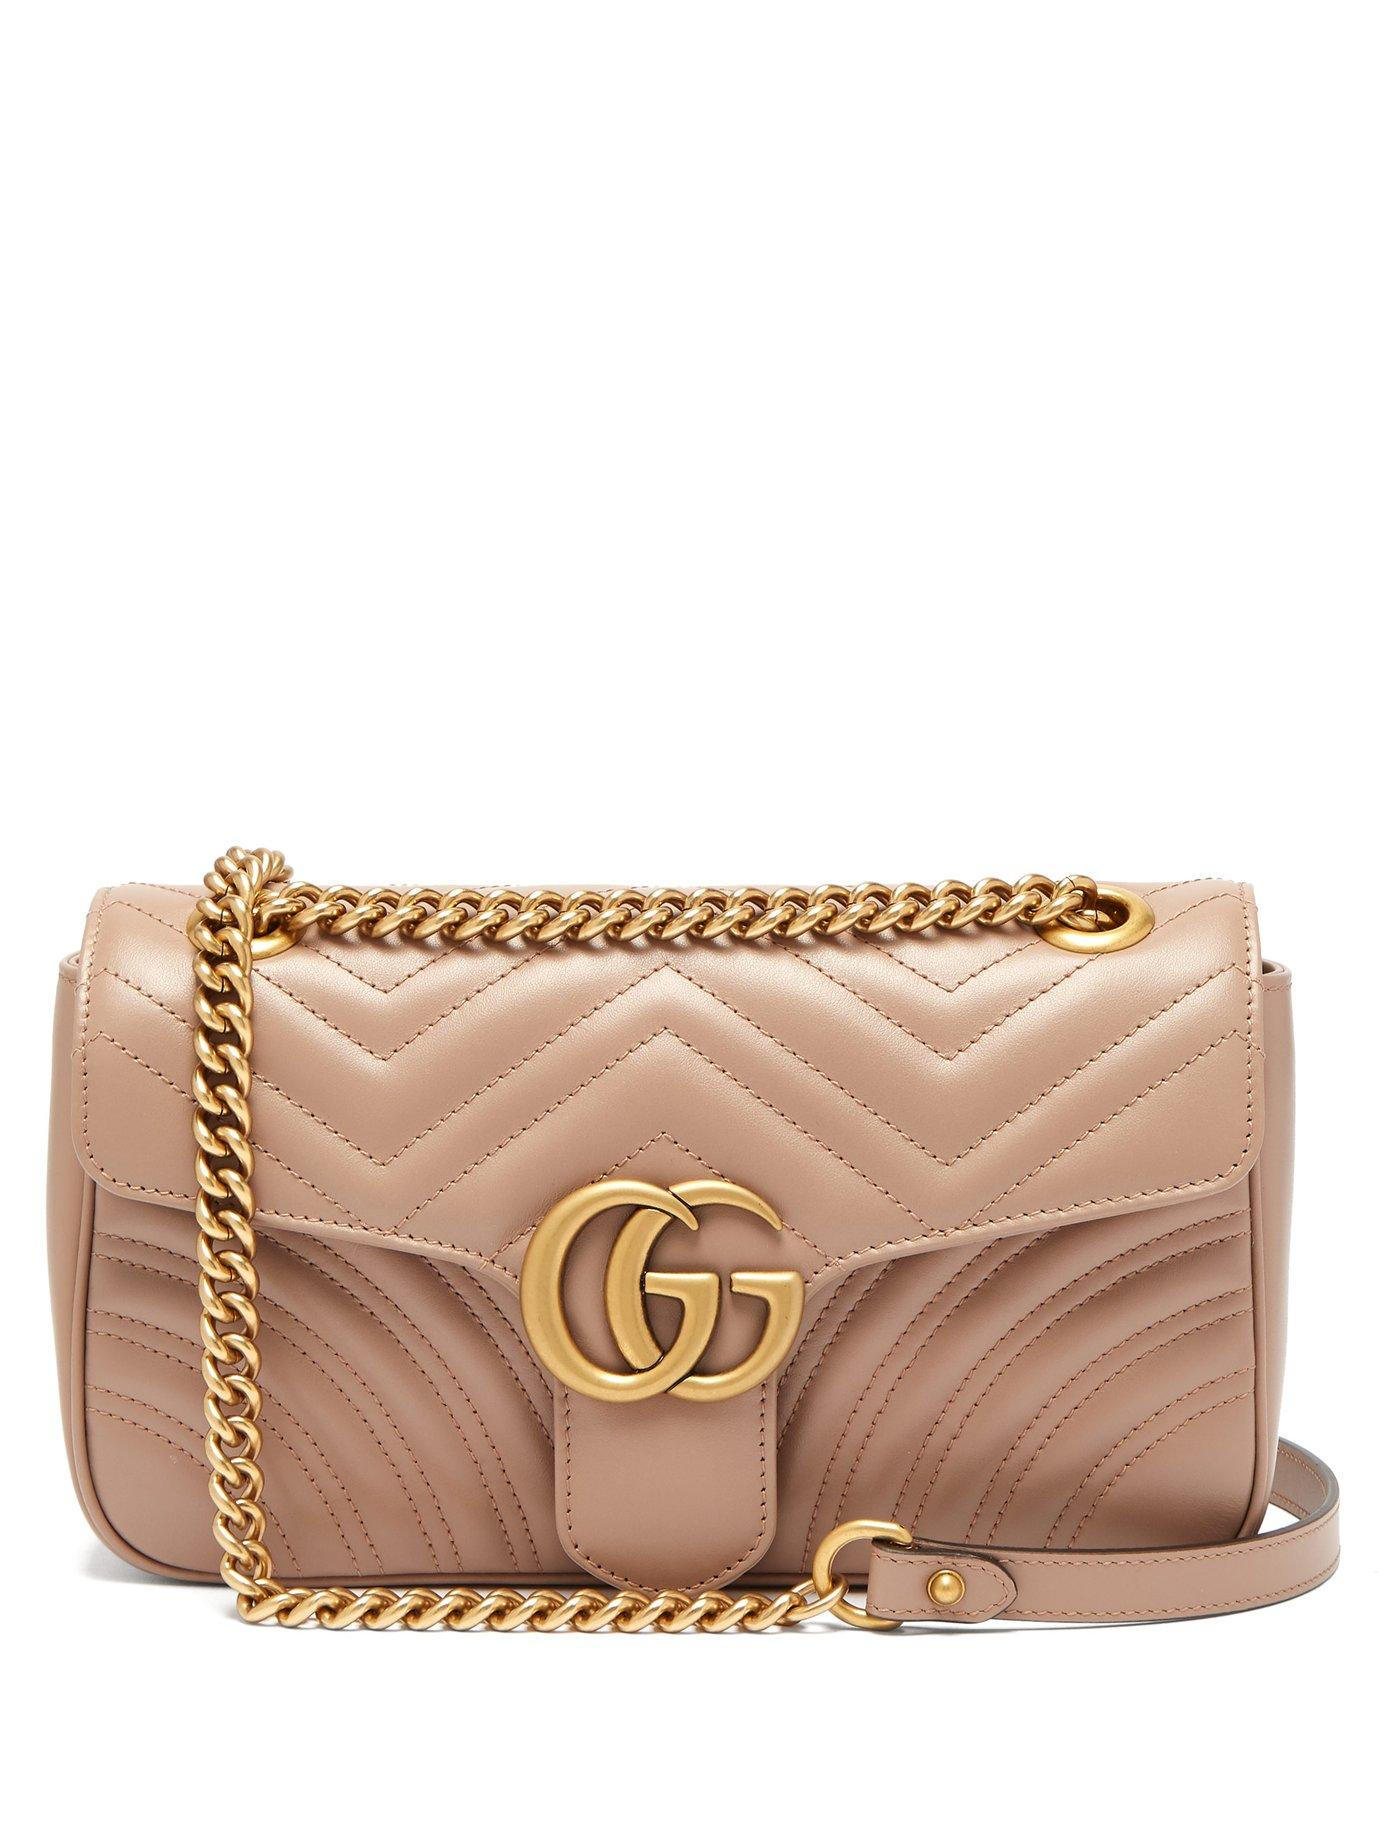 b9399cac461f Gucci. Women's Gg Marmont Small Quilted Leather Shoulder Bag